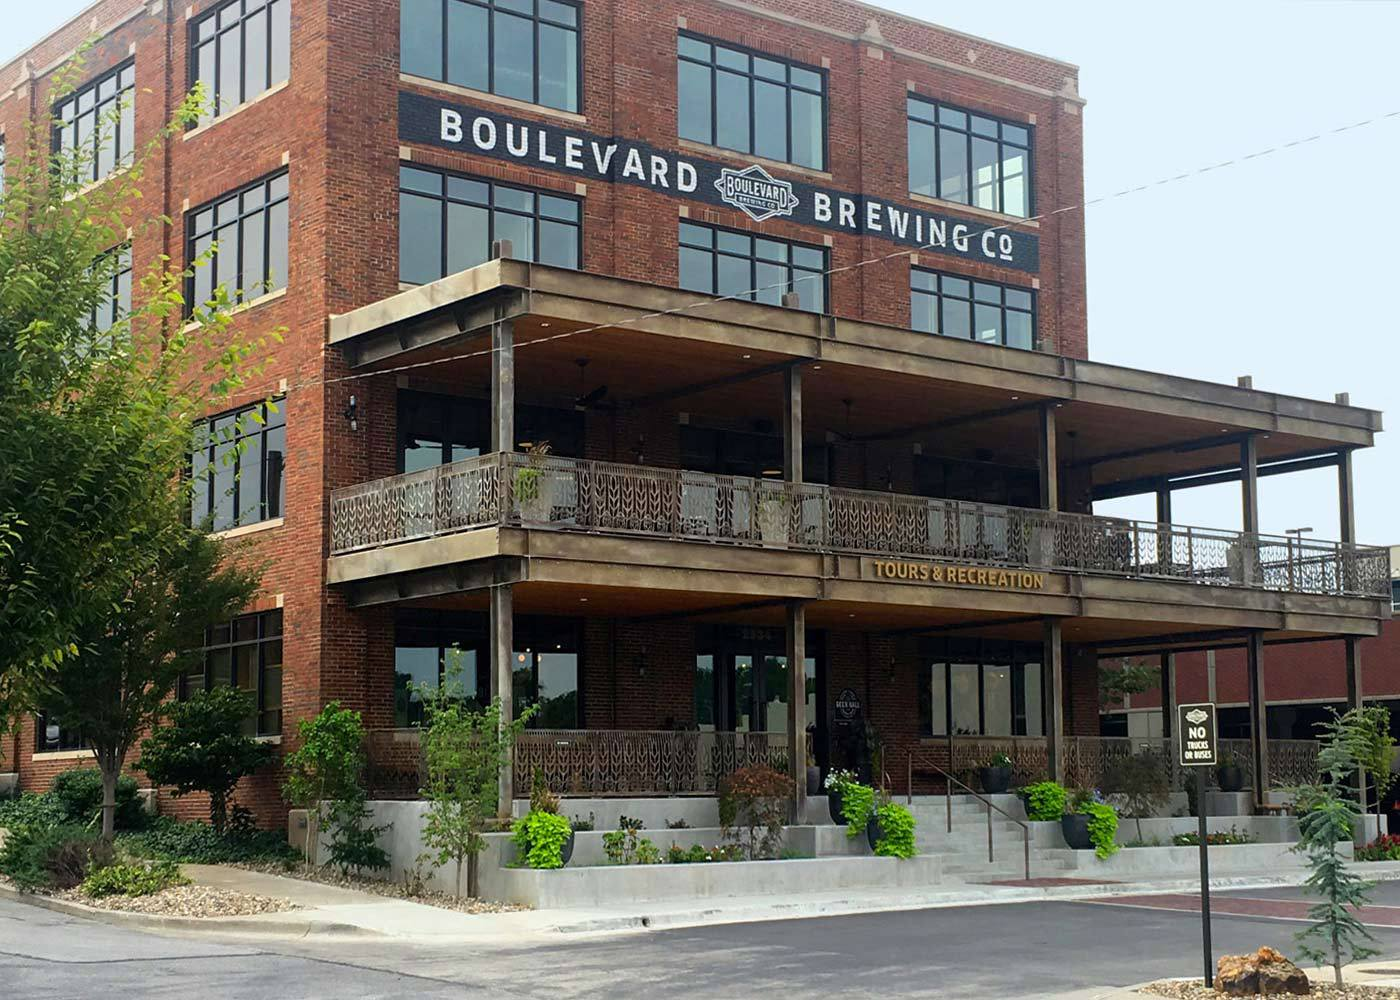 Standard Sheet Metal case study at Boulevard Brewing Company